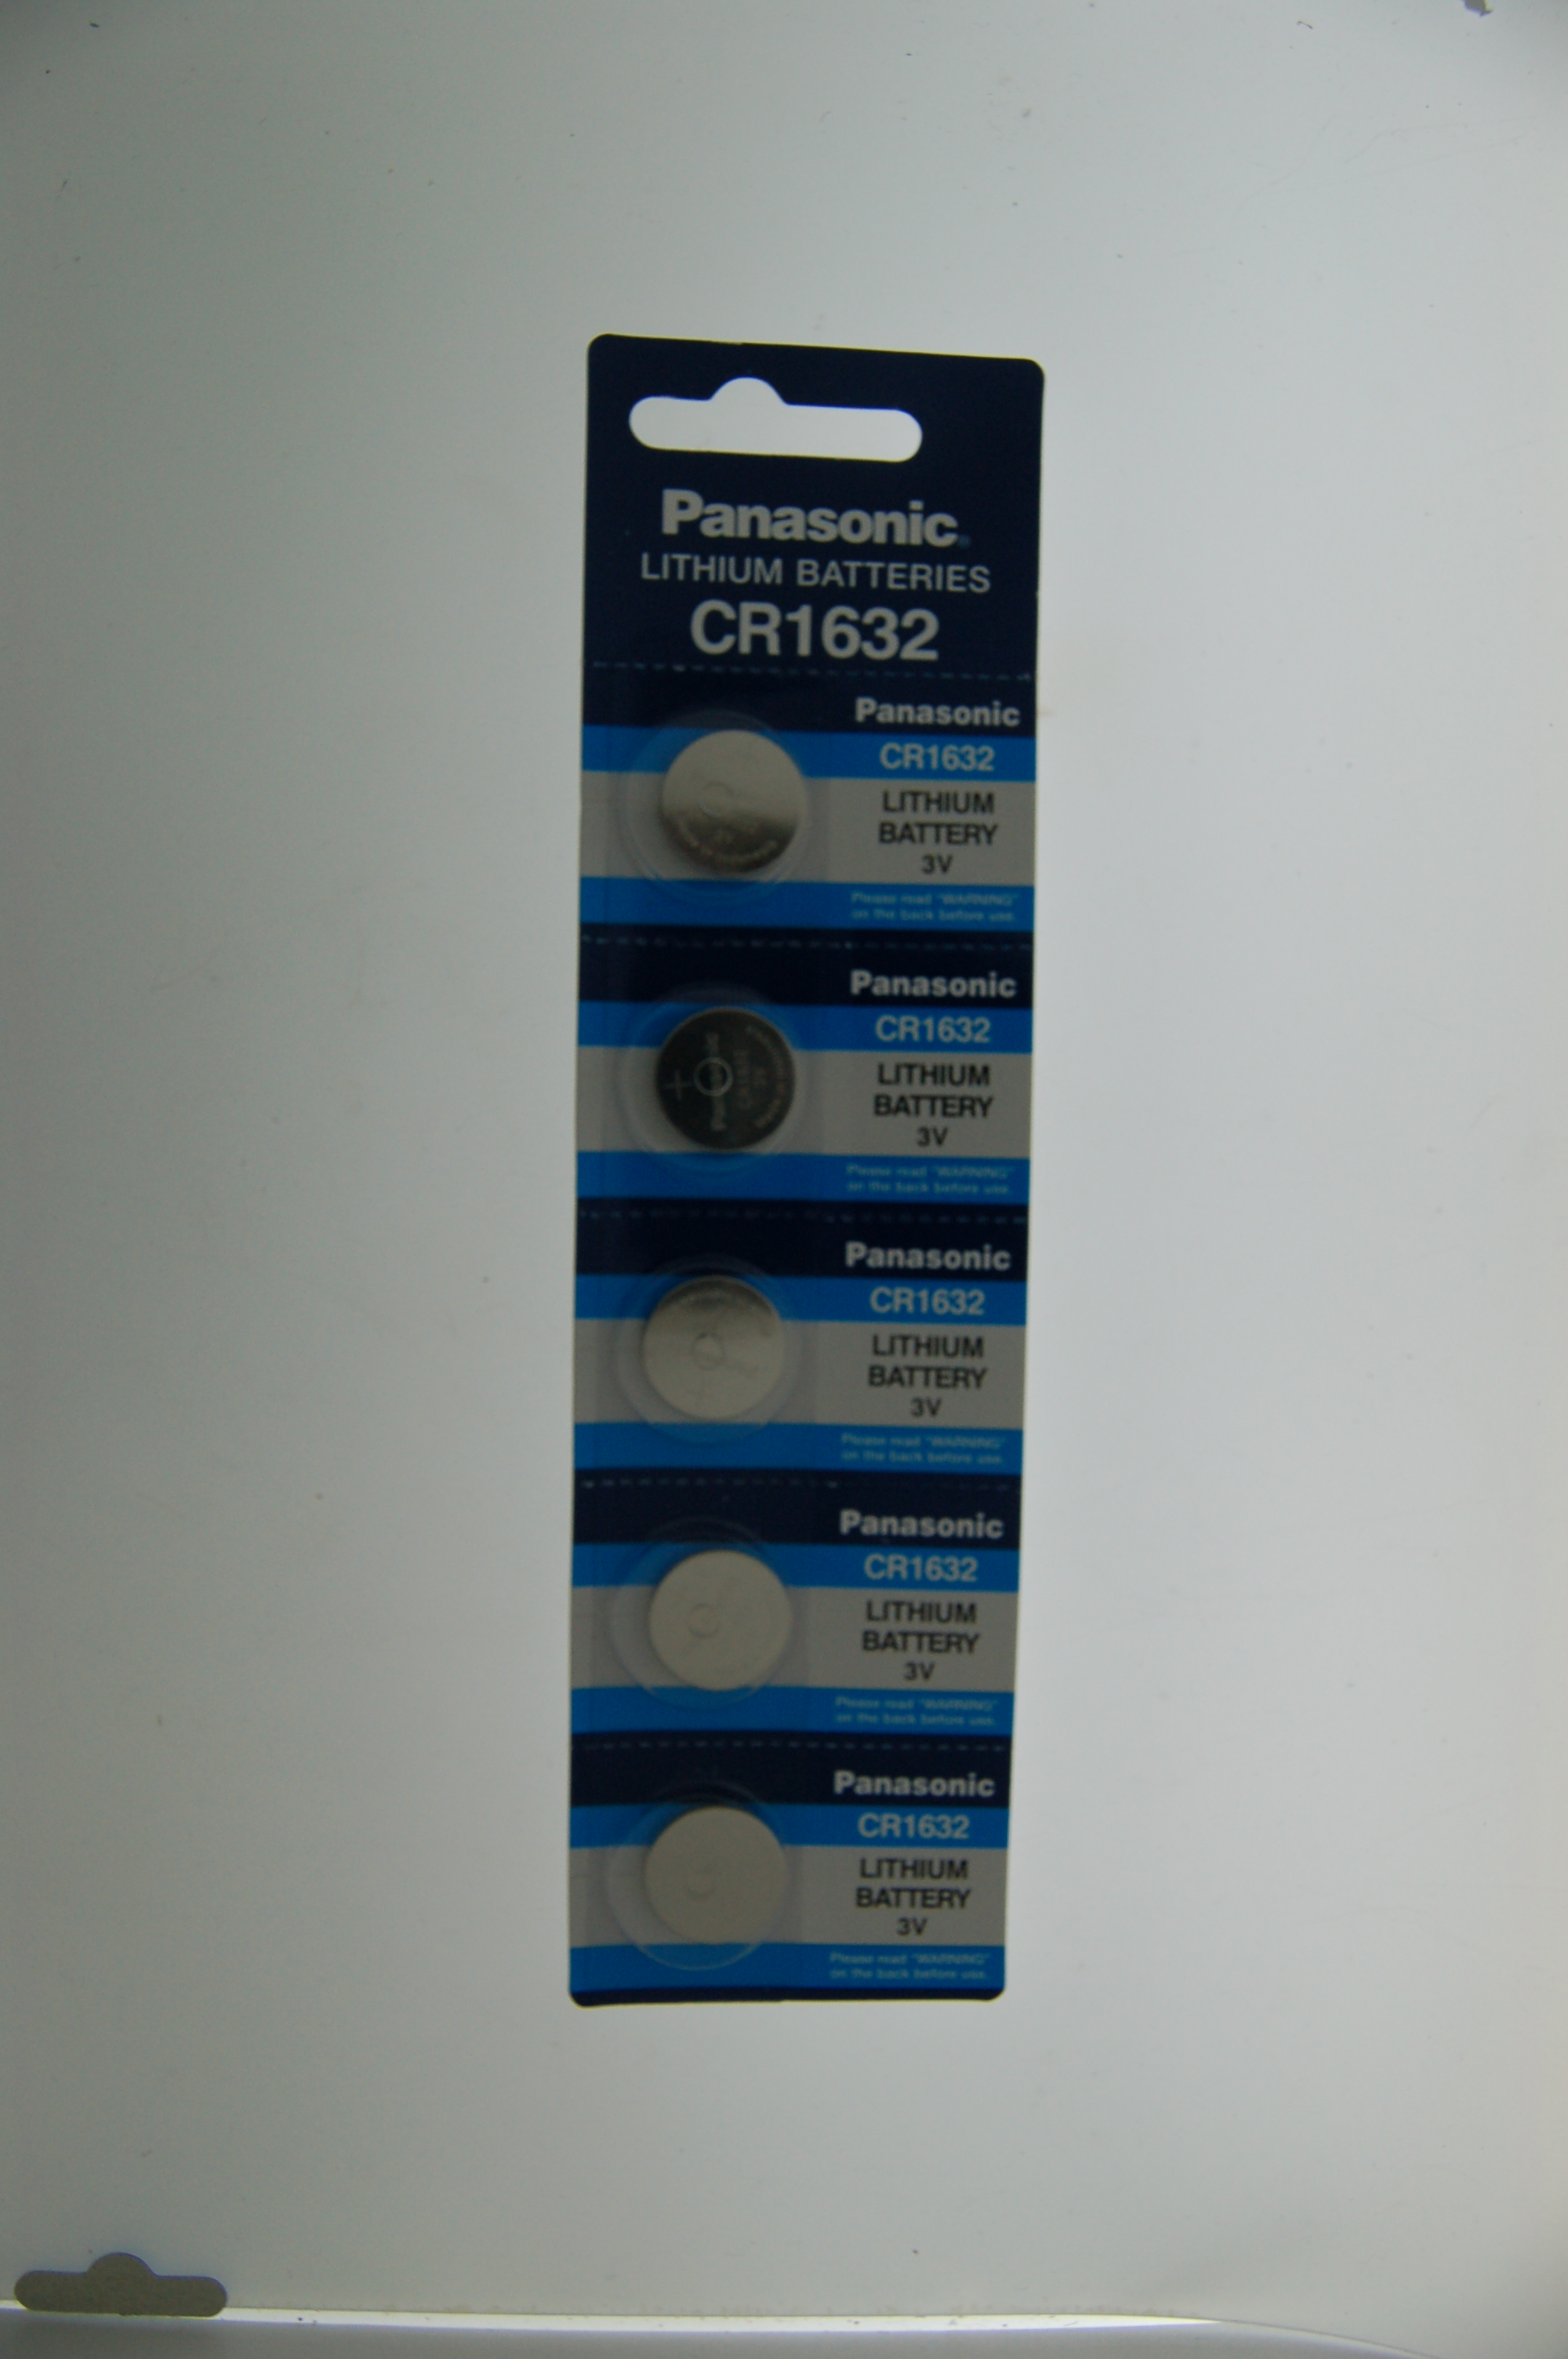 Panasonic Lithium Battery CR1632